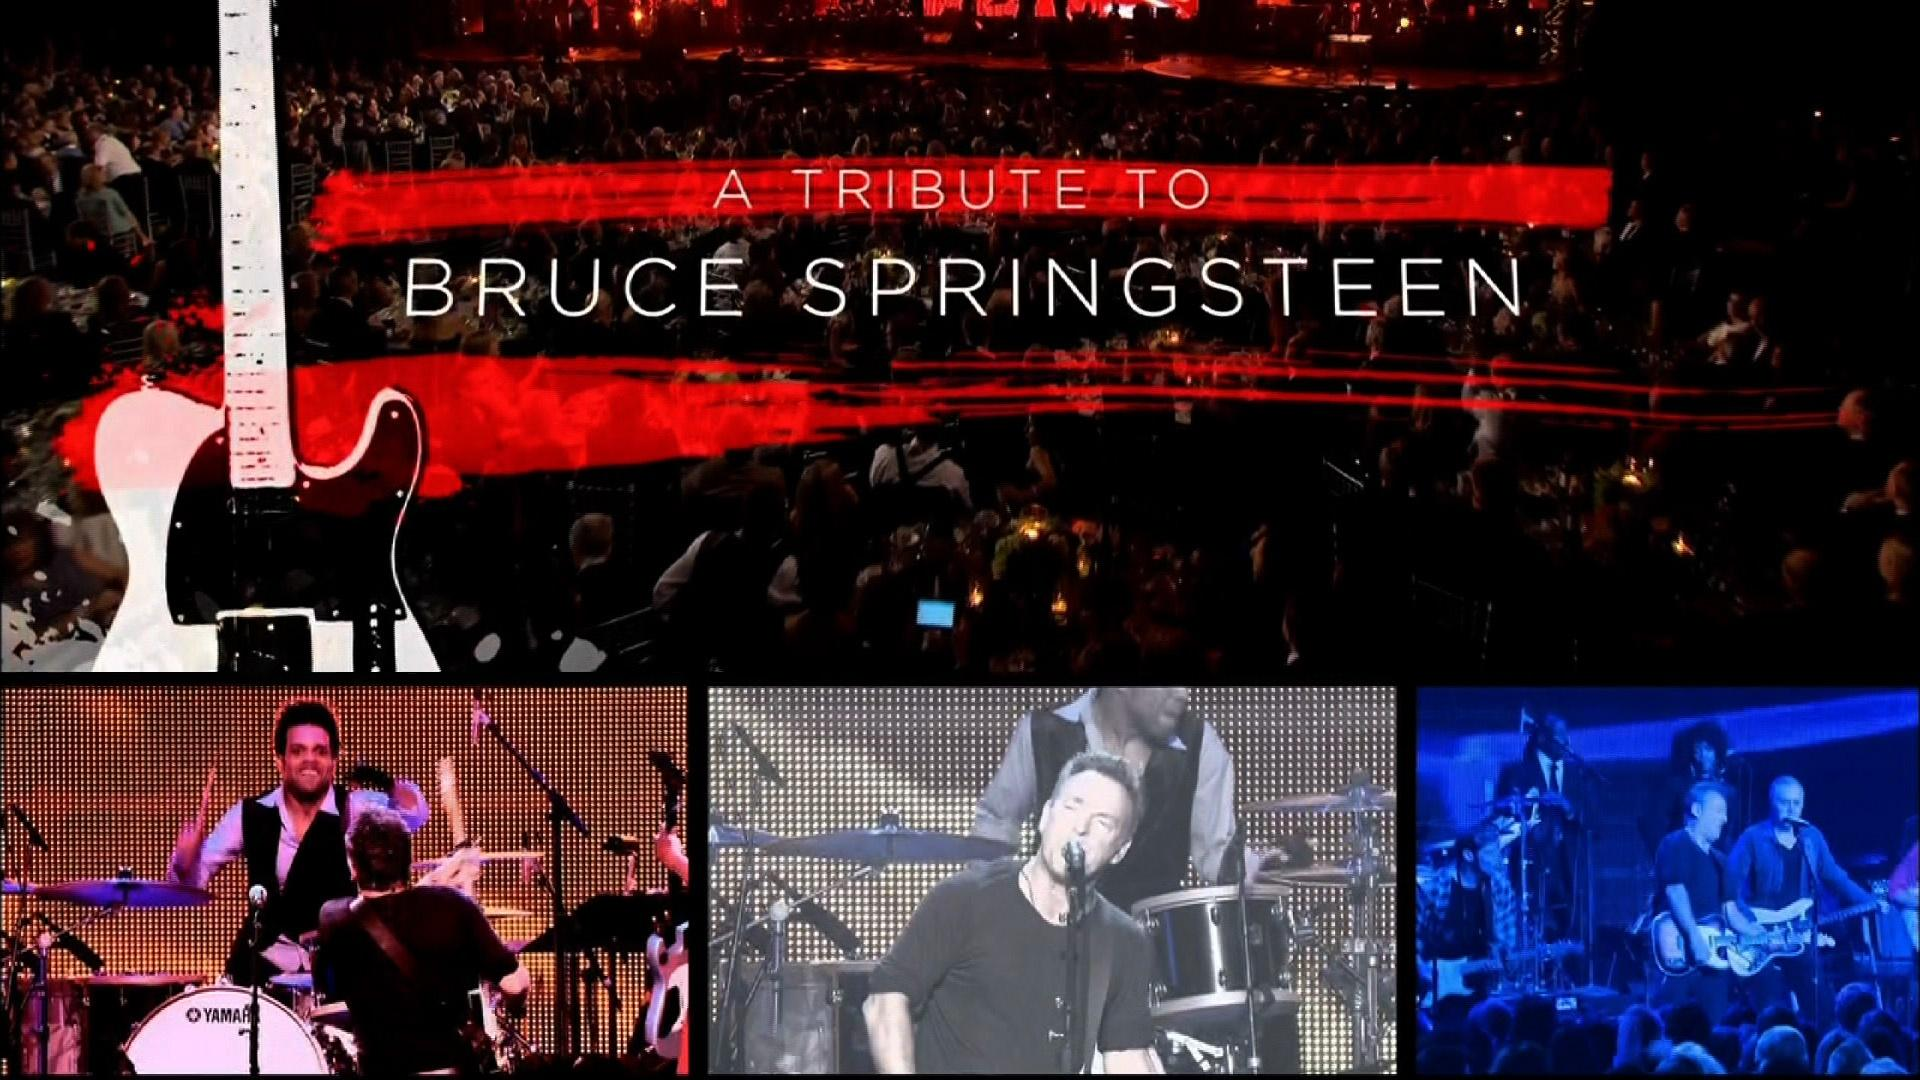 Tribute to Bruce Springsteen: Saturday, January 24 at 7pm